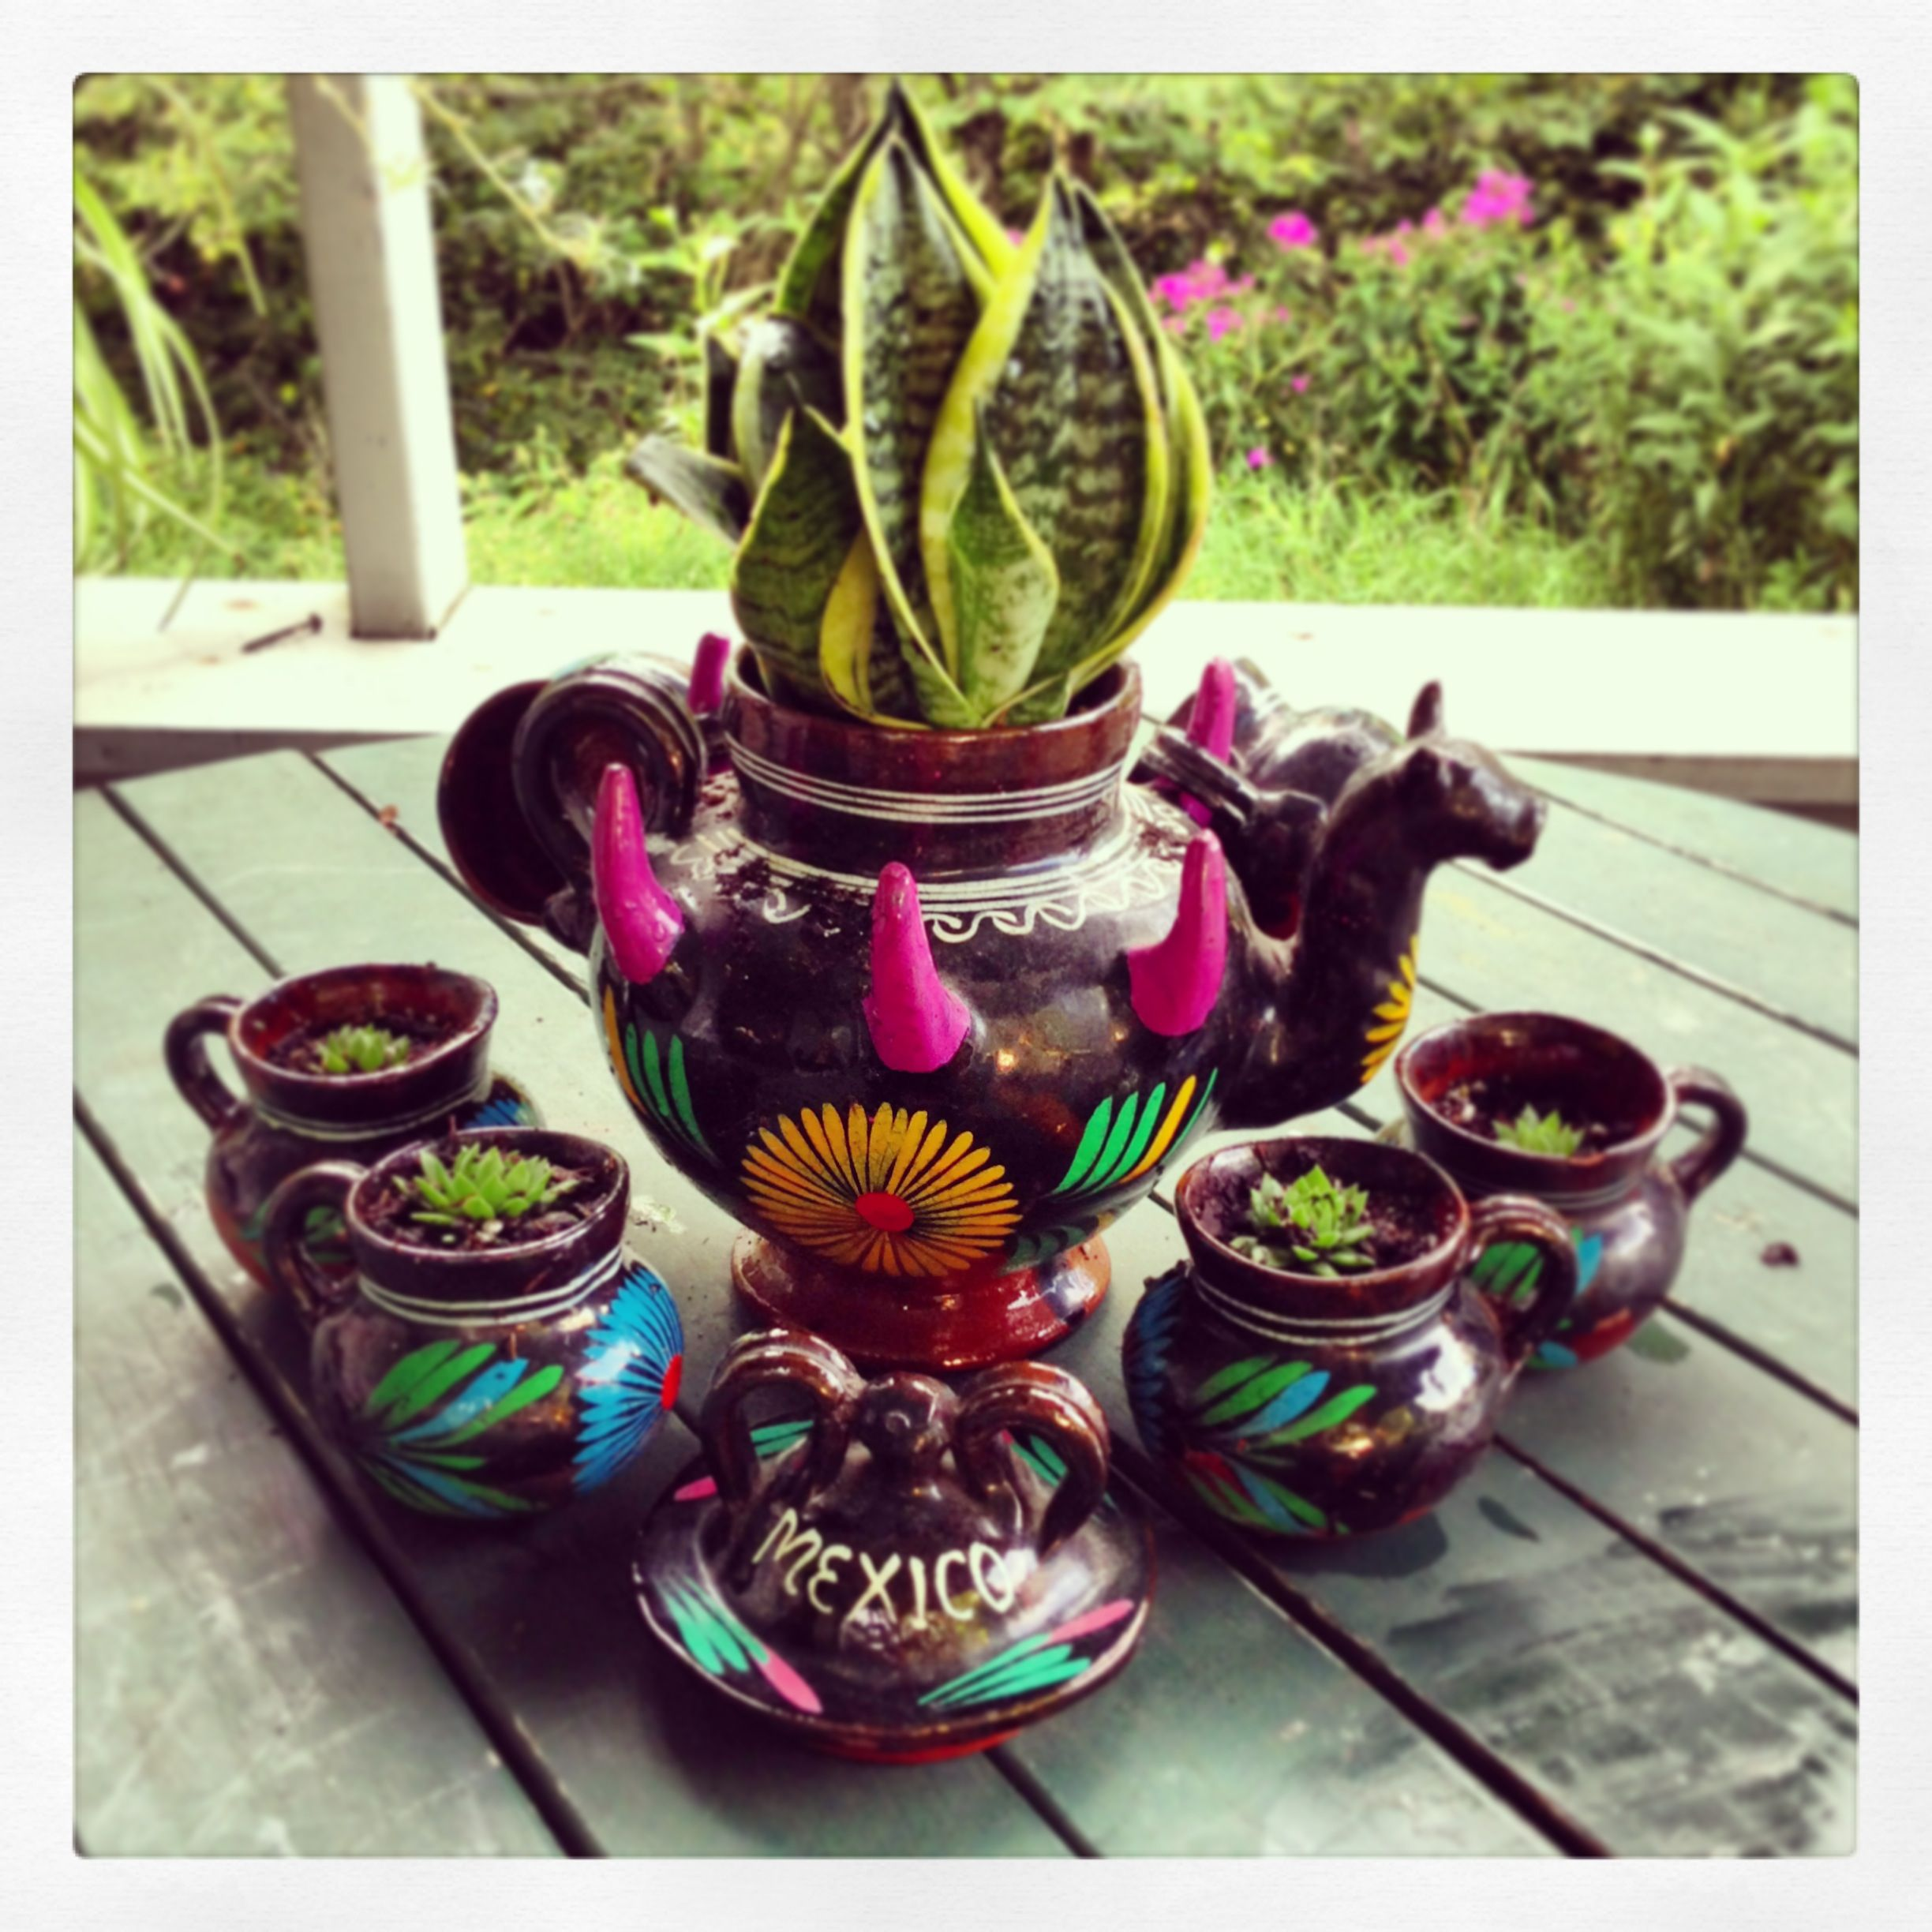 Upcycle Mexican Pottery (tea Set) To Flower Pots! Just Drilled A Few Small